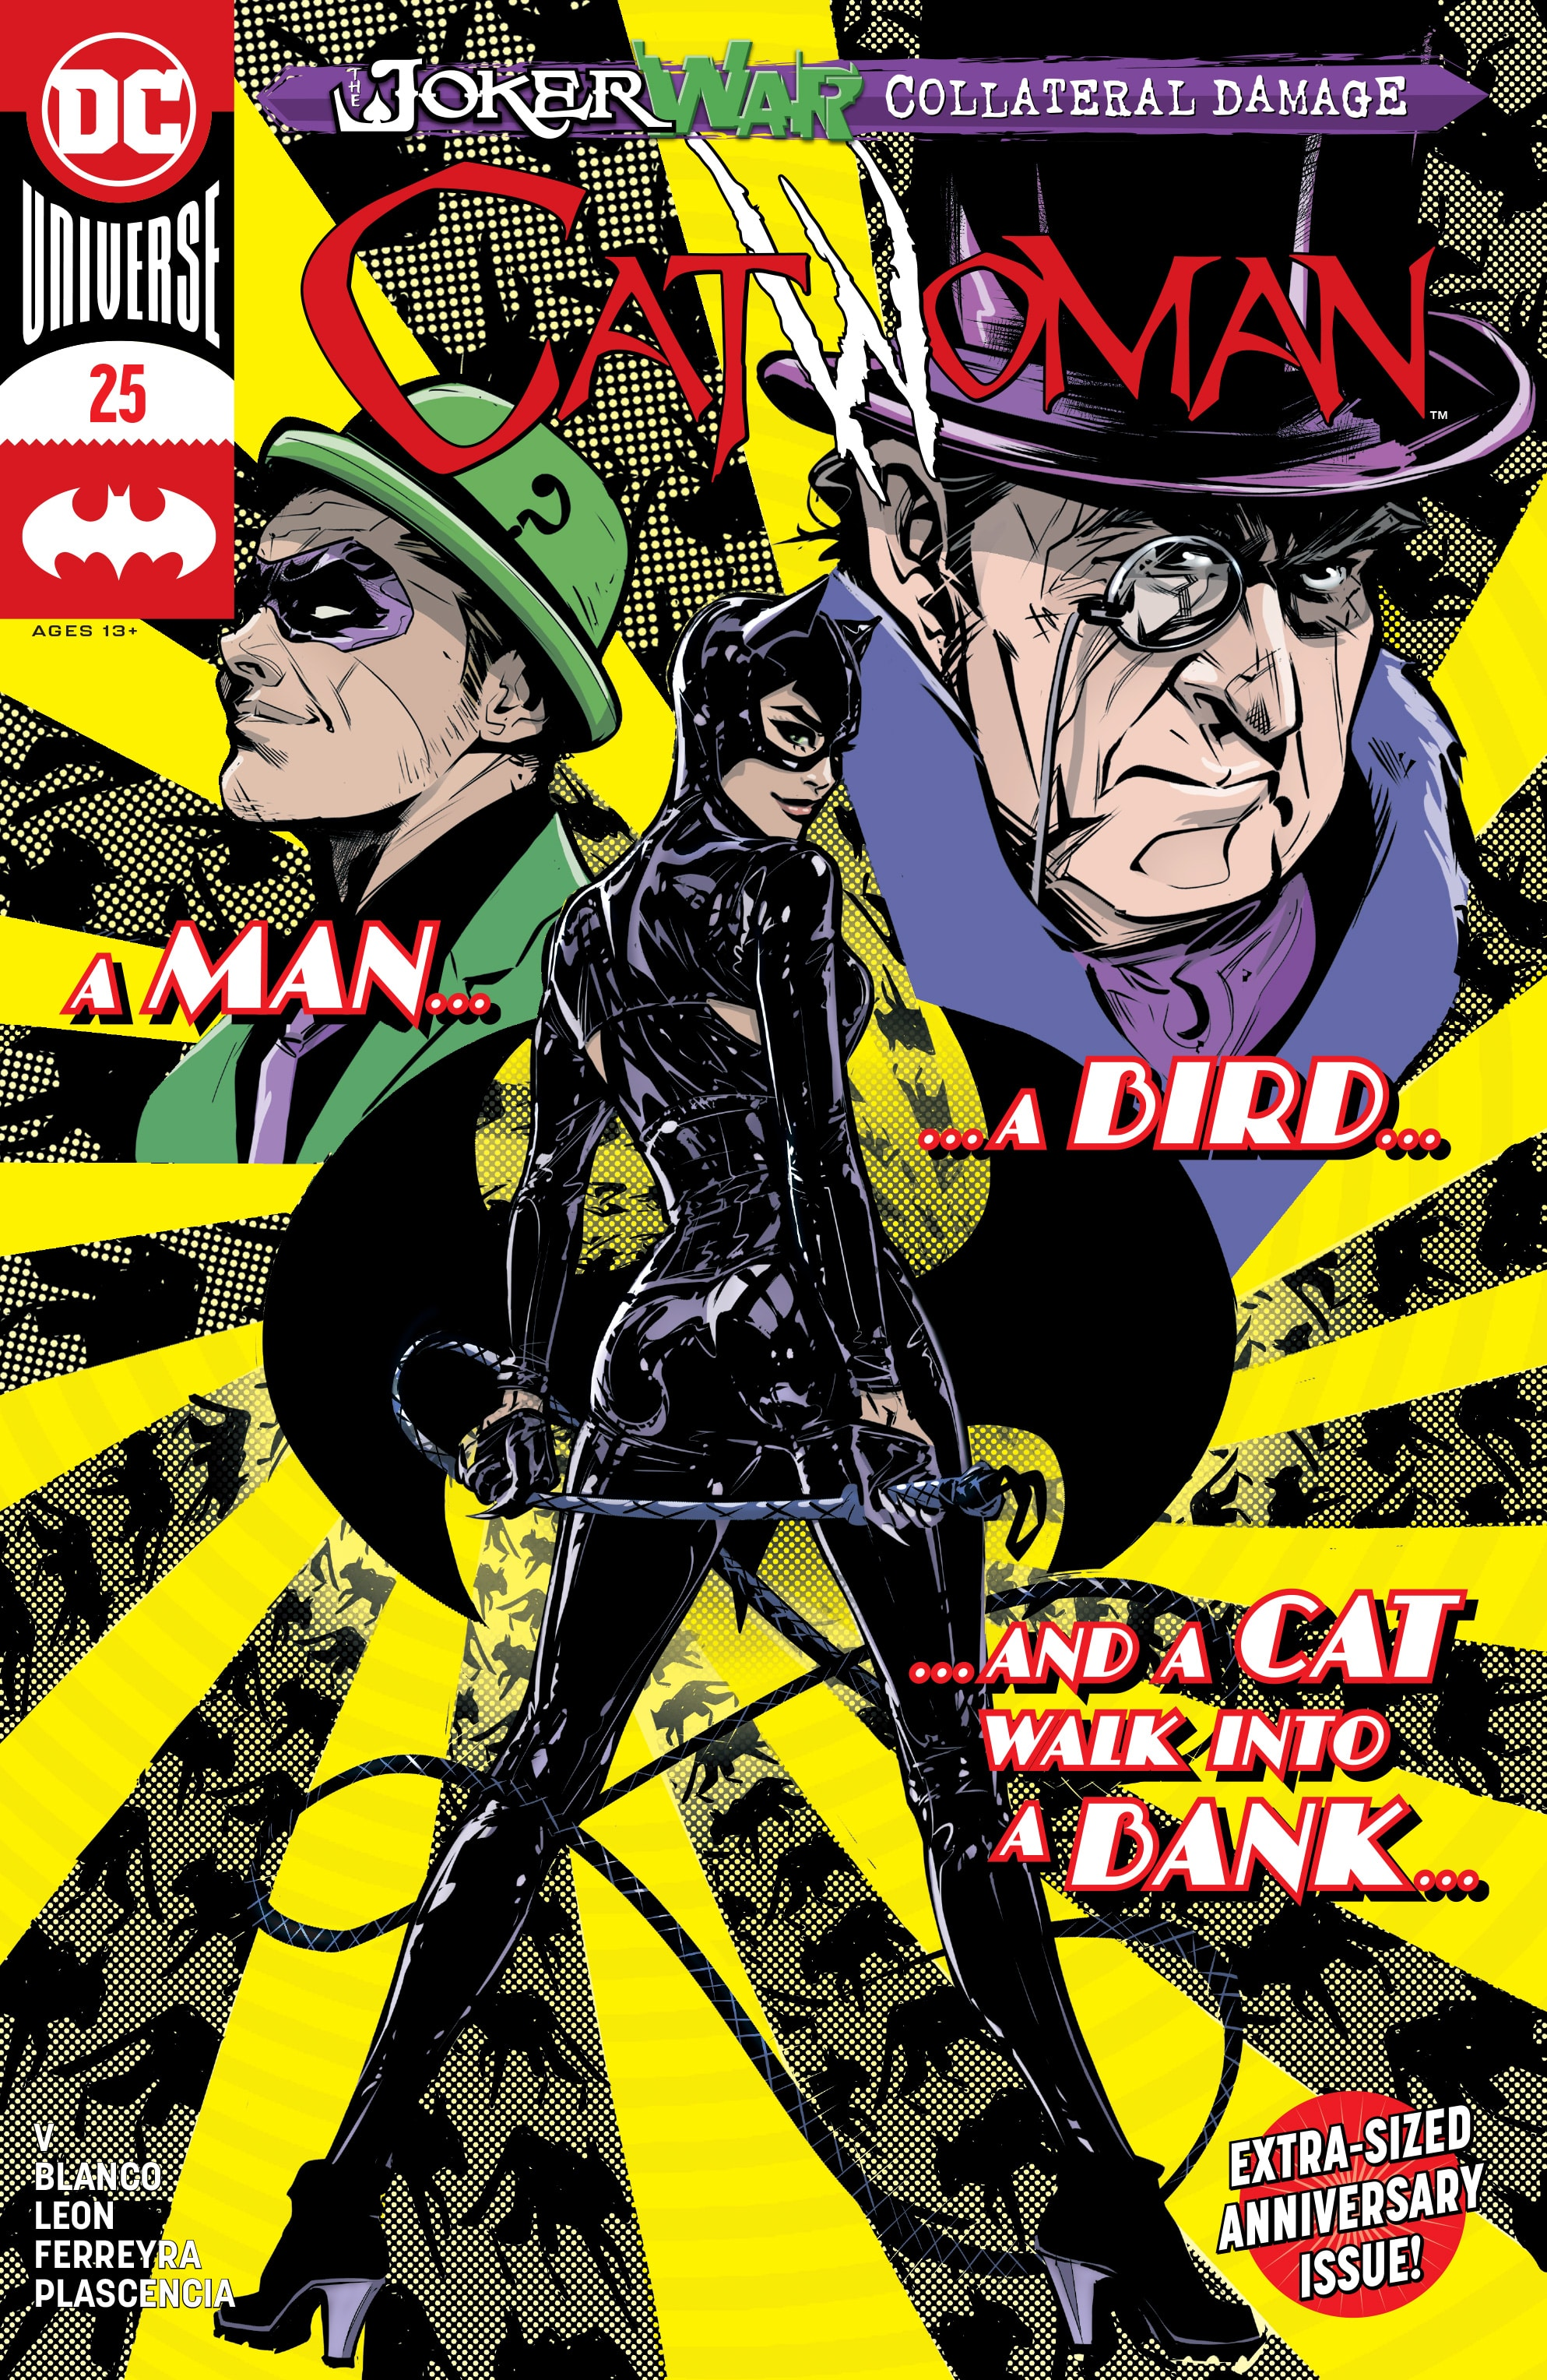 Catwoman 25: Let's Dance – THRICE!